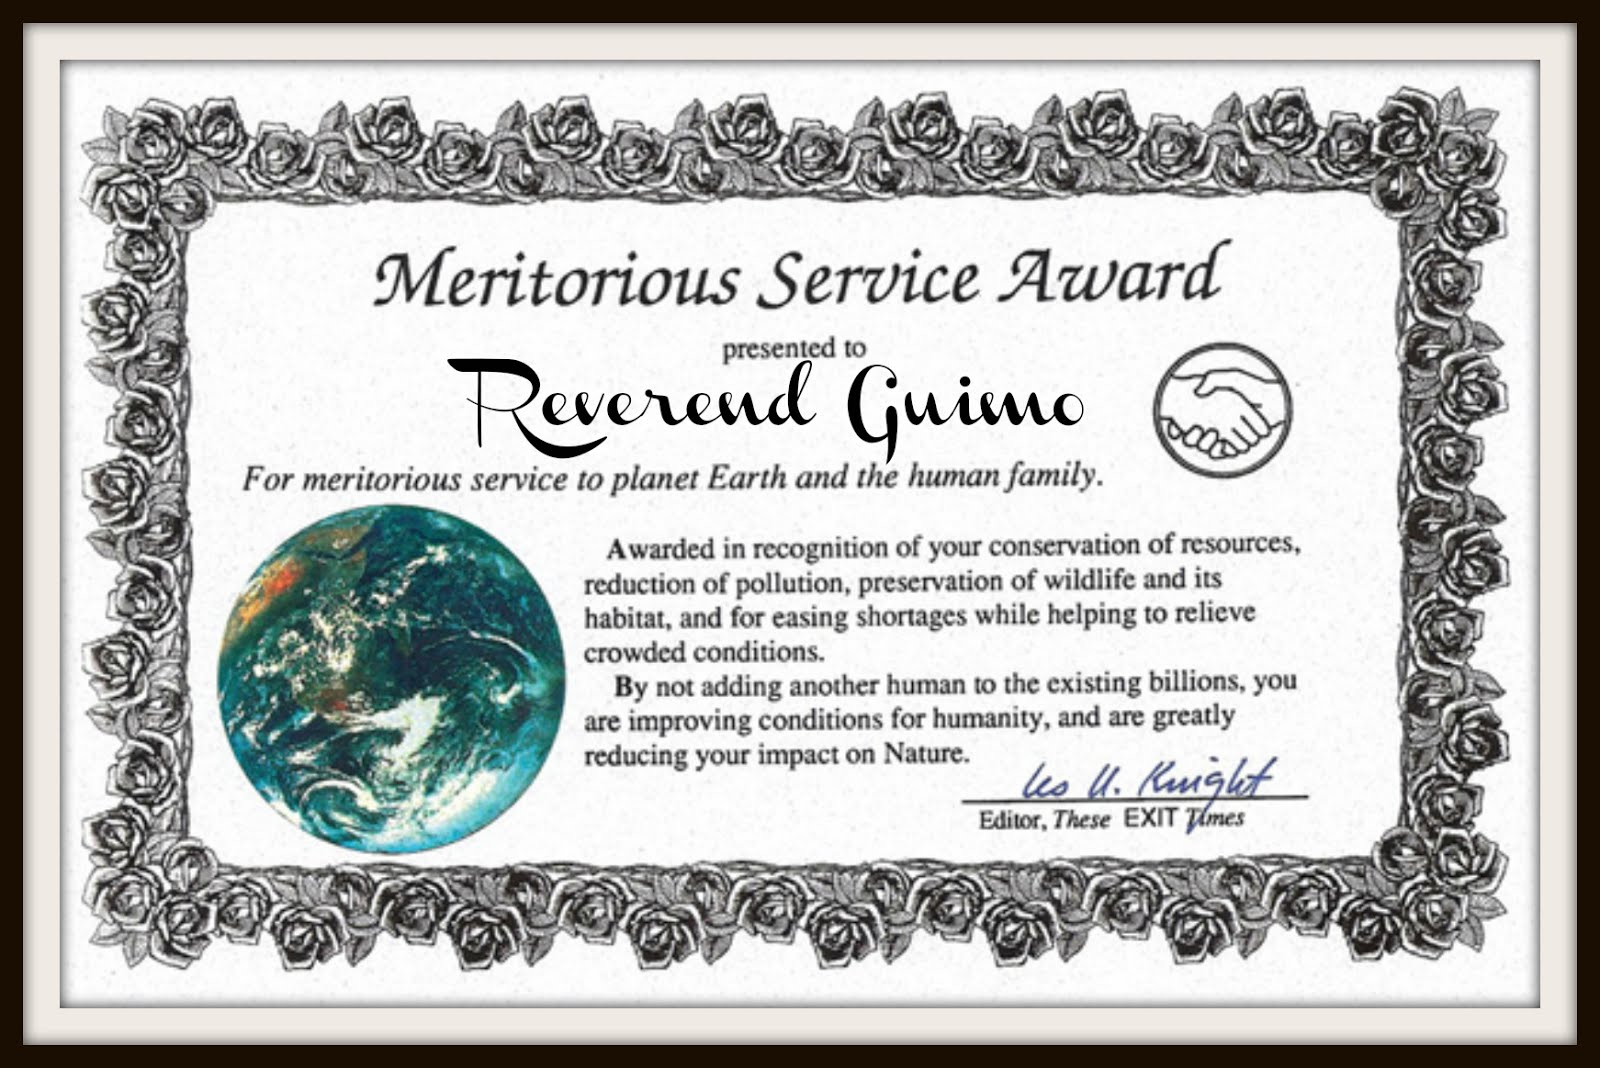 I am a Meritorious Service Award Recipient